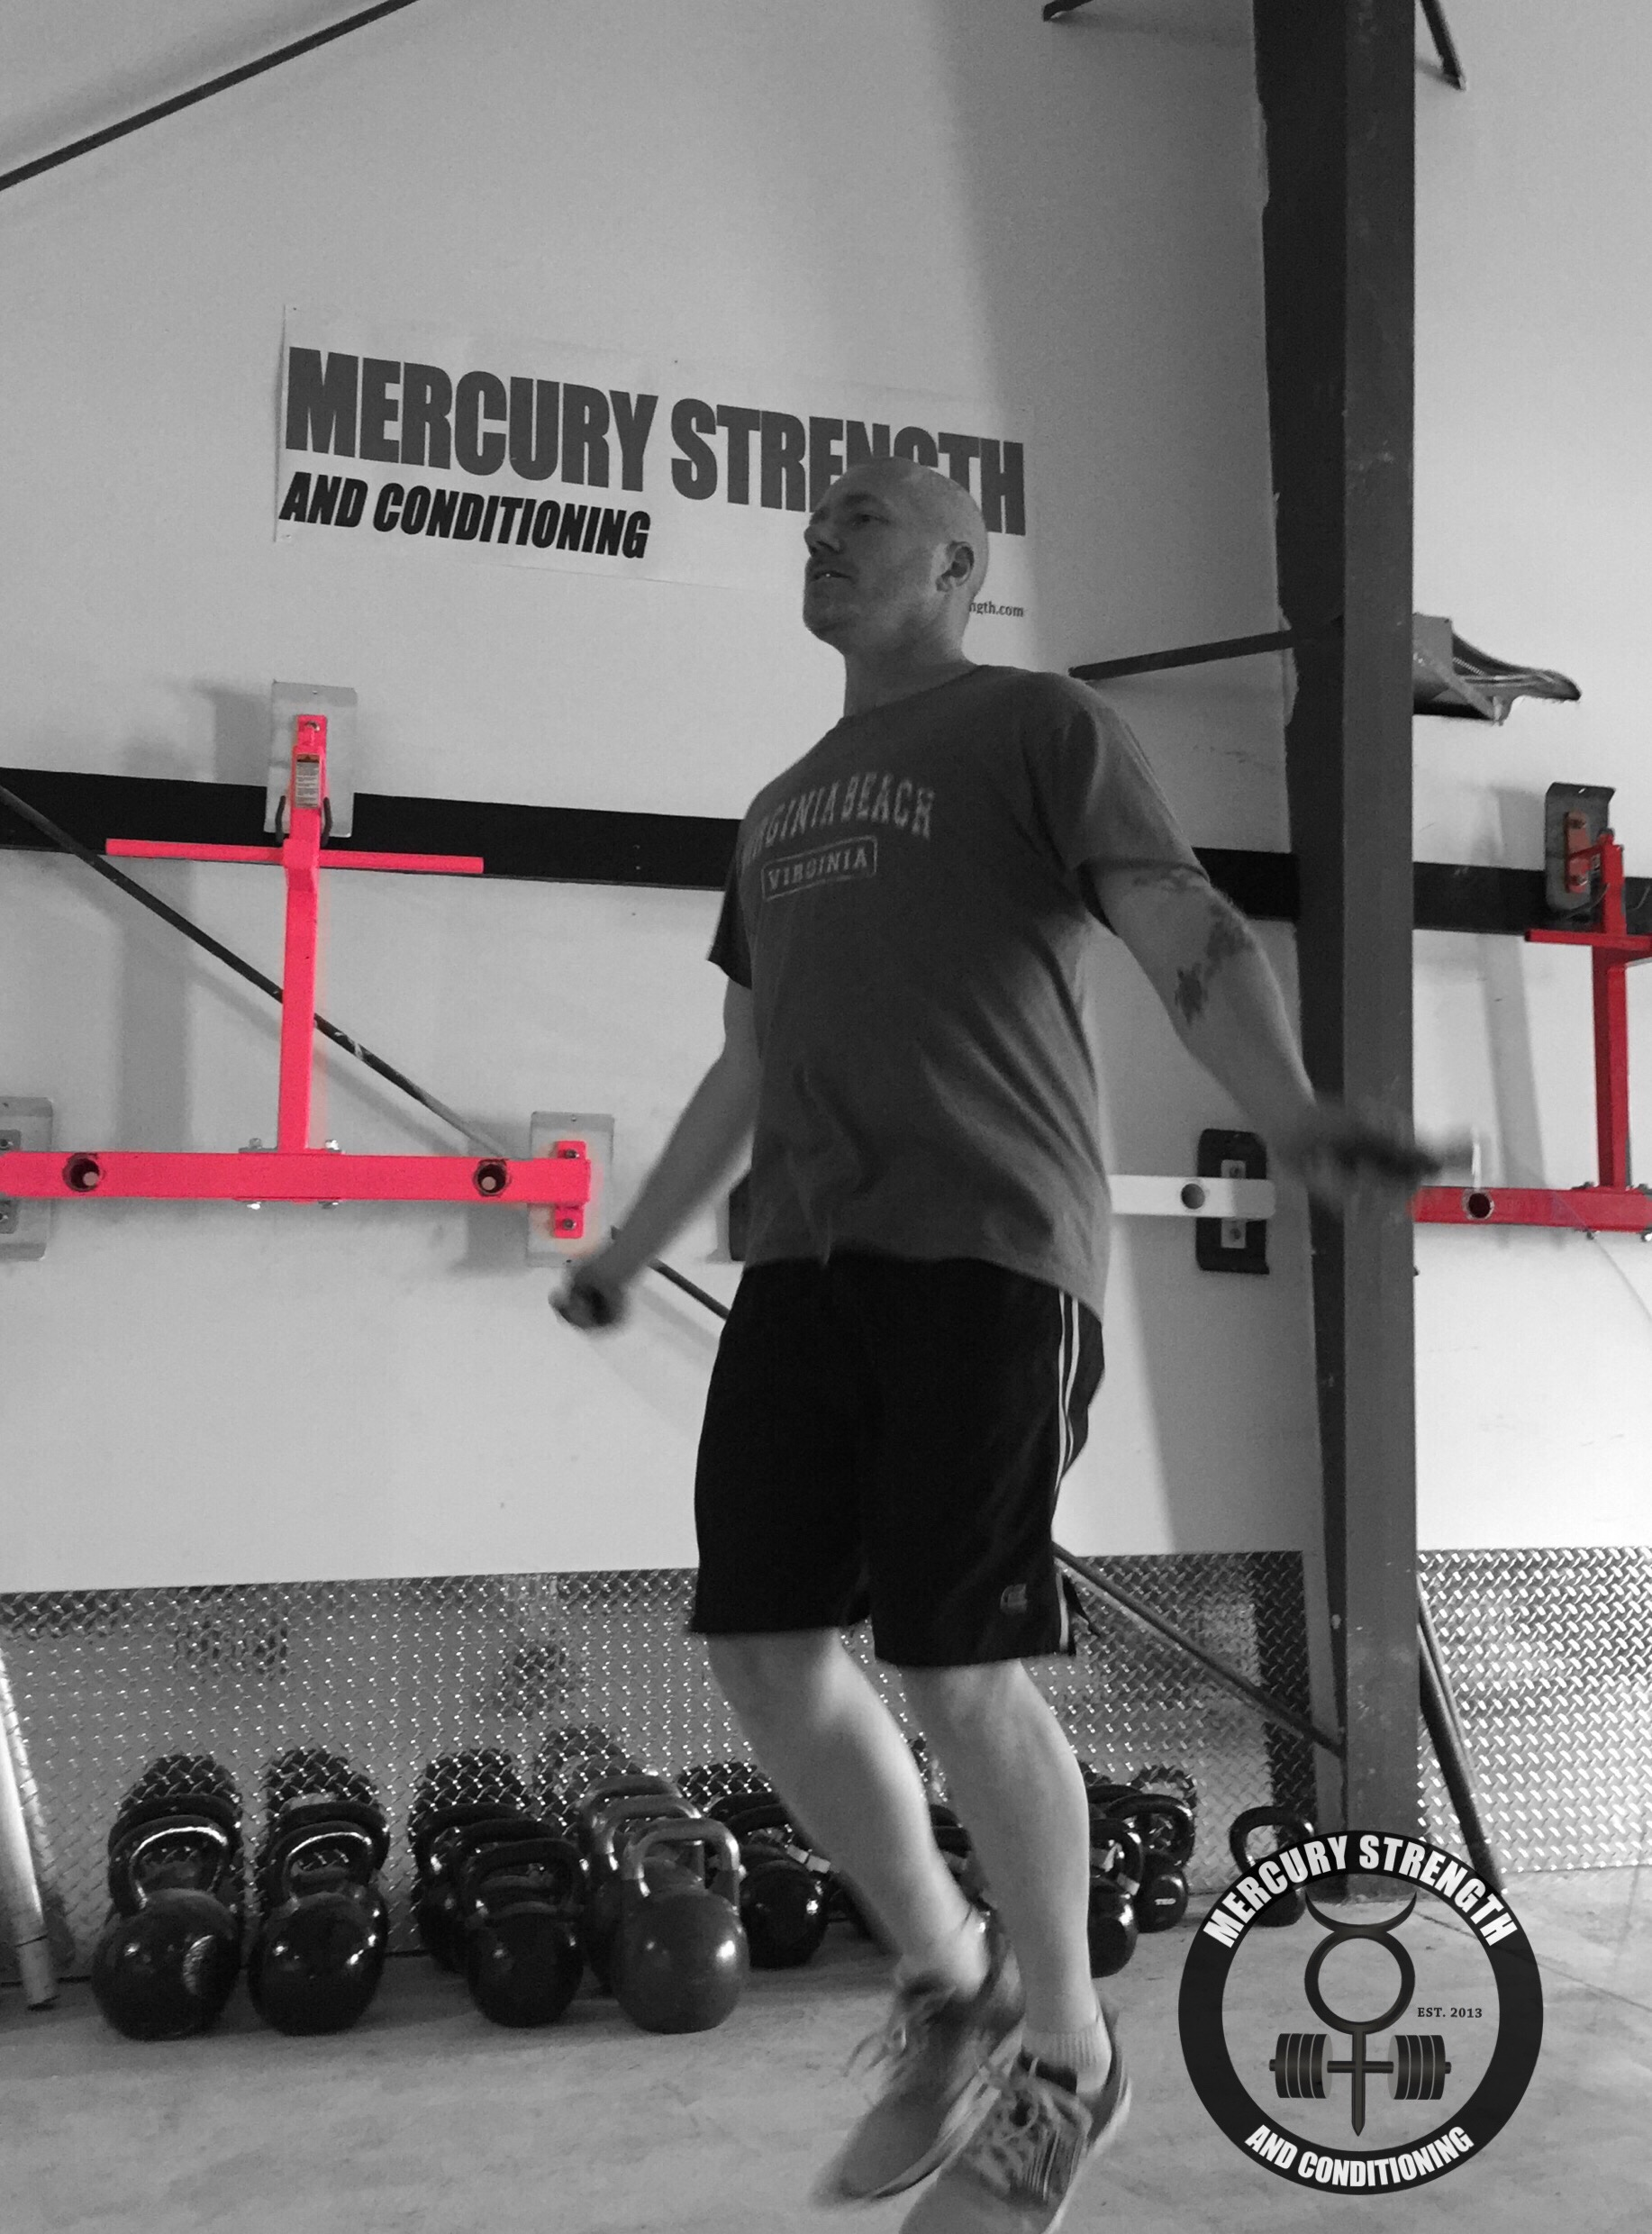 Carl with some skipping during yesterday's workout